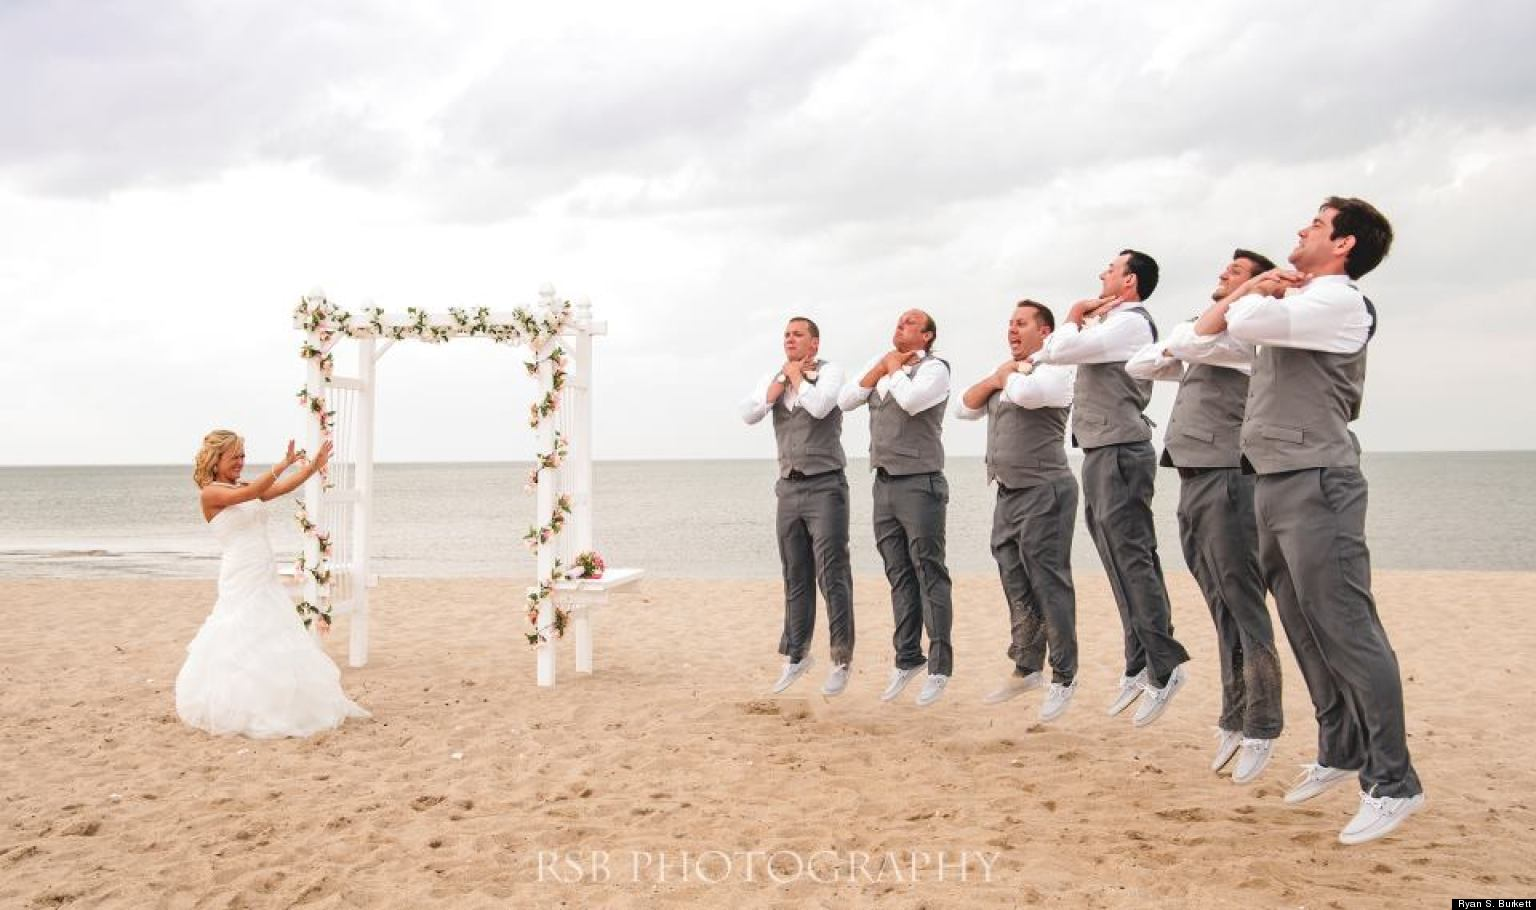 'Star Wars' Wedding Photo: Bride Shows Off Her Sith Powers ... Vadering